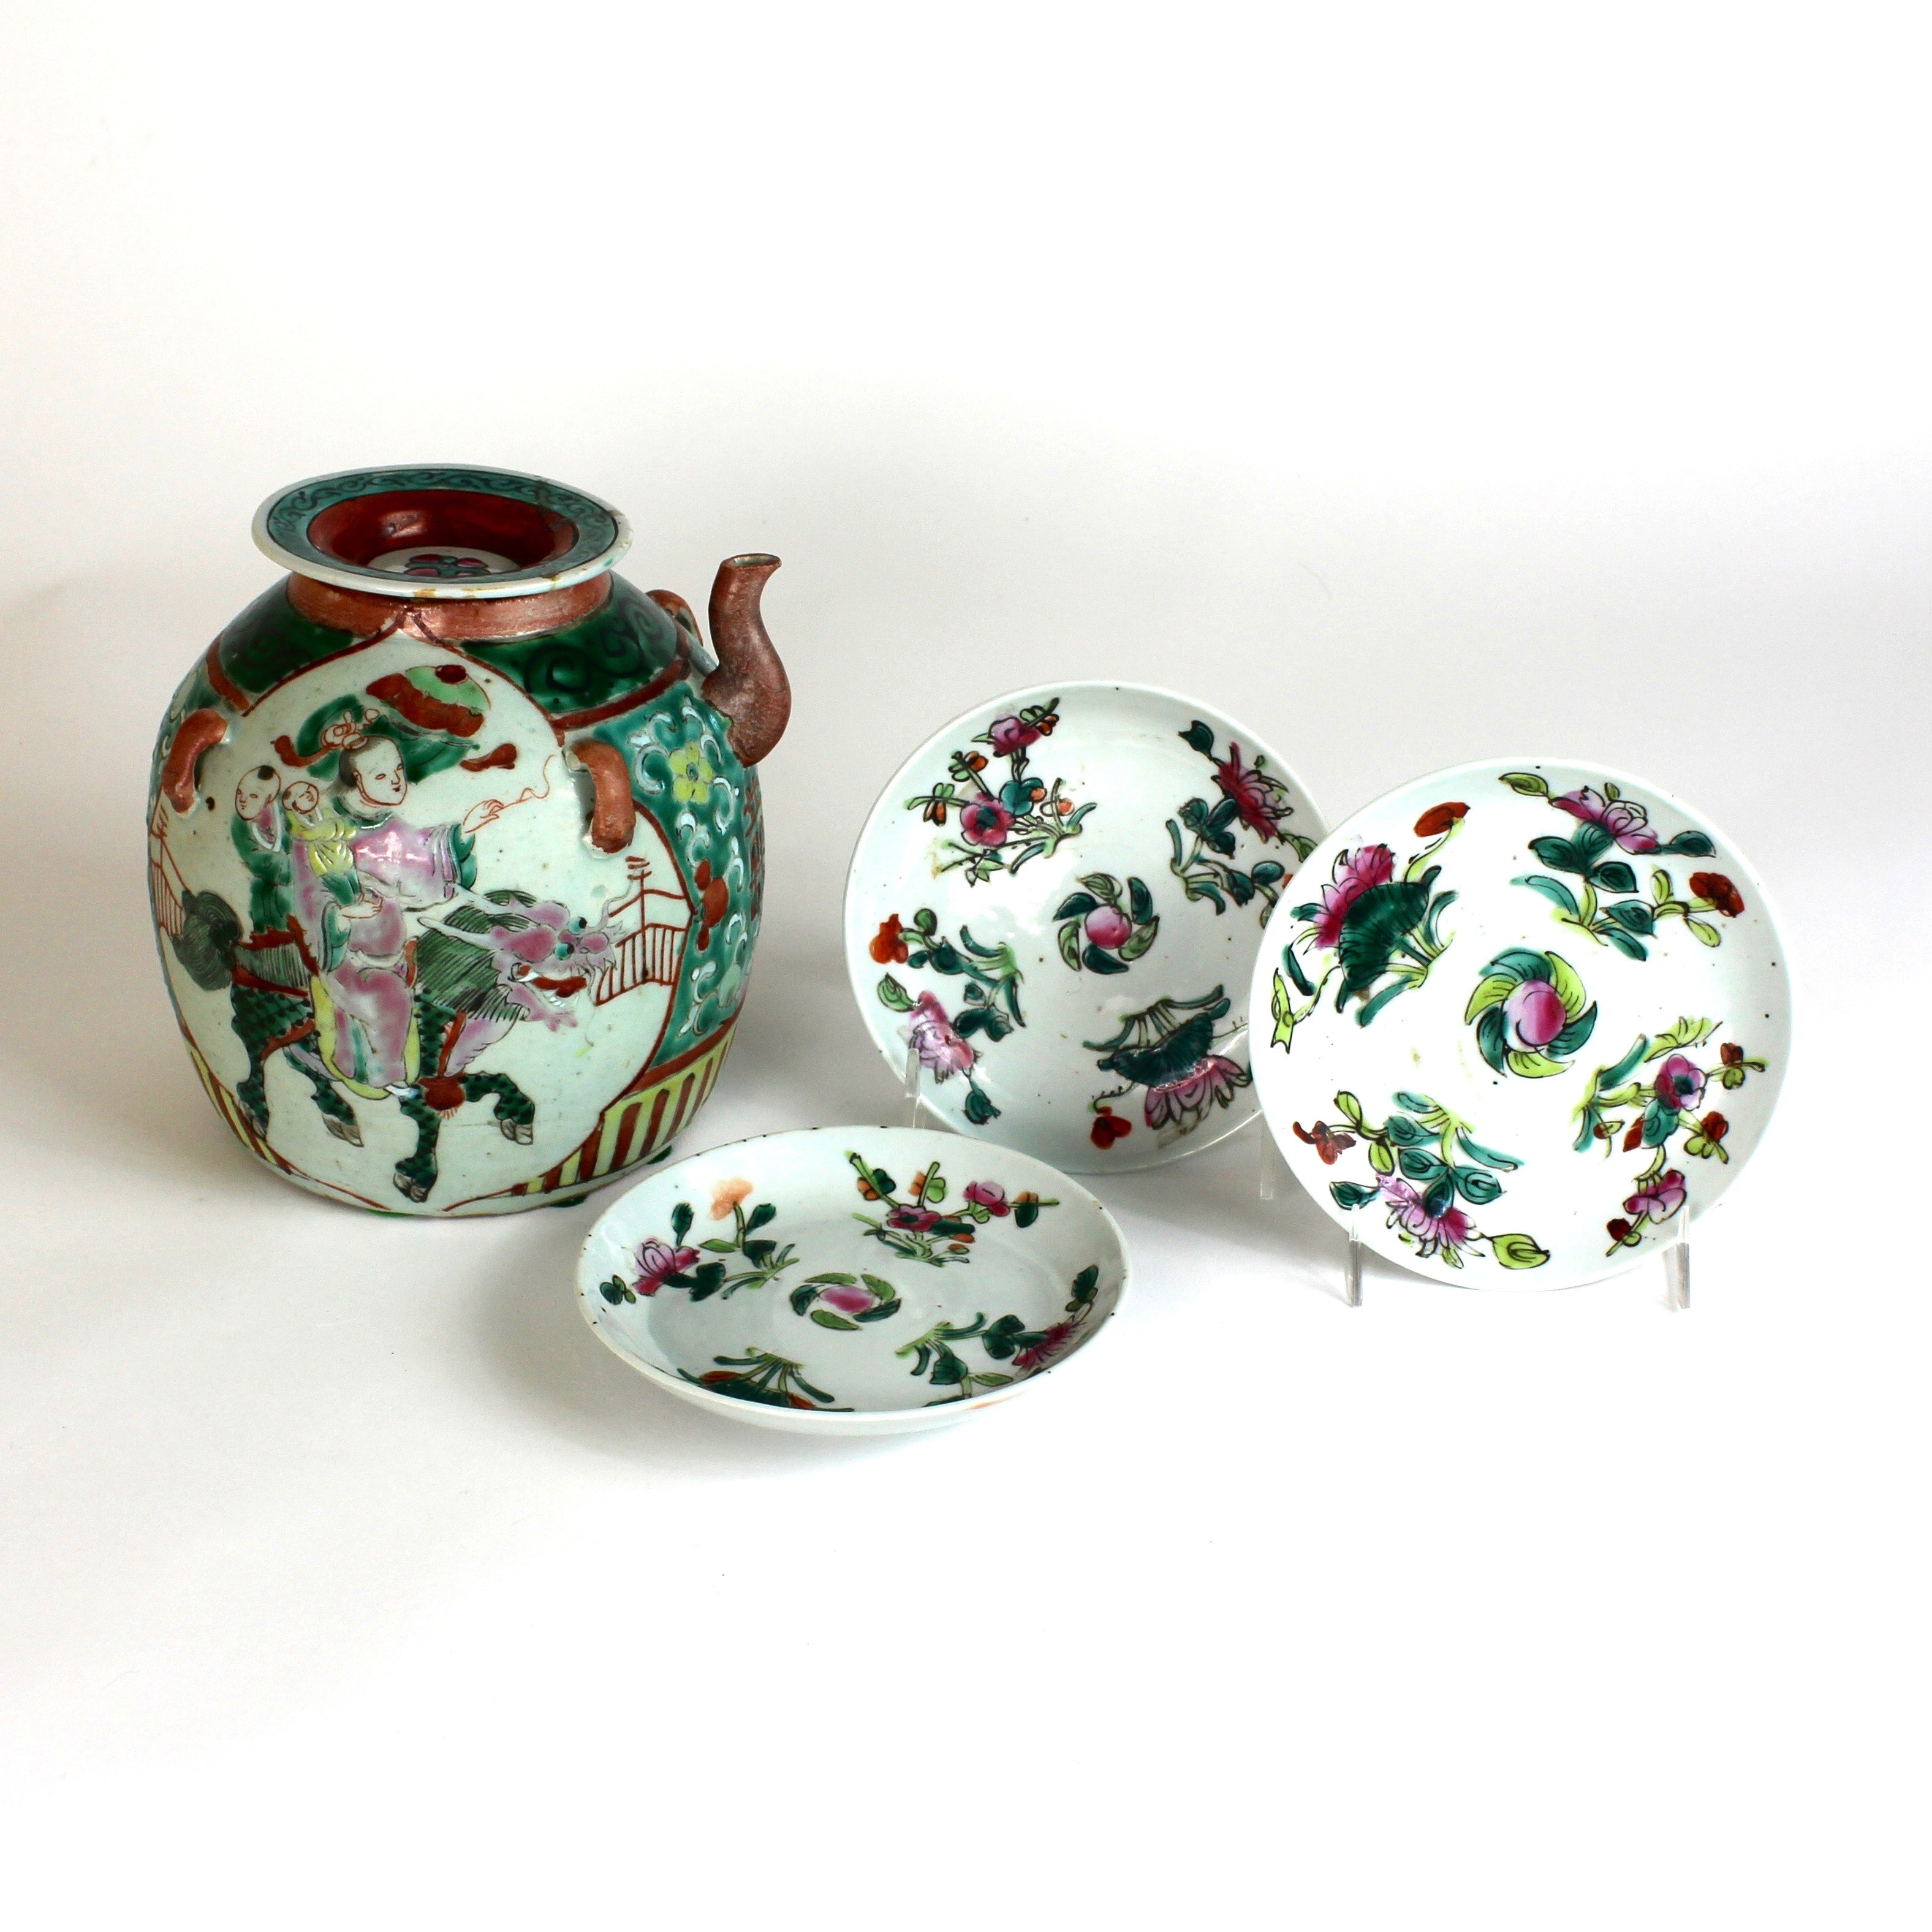 Vintage Chinese Pottery Wine Jug and Hand Painted Dishes